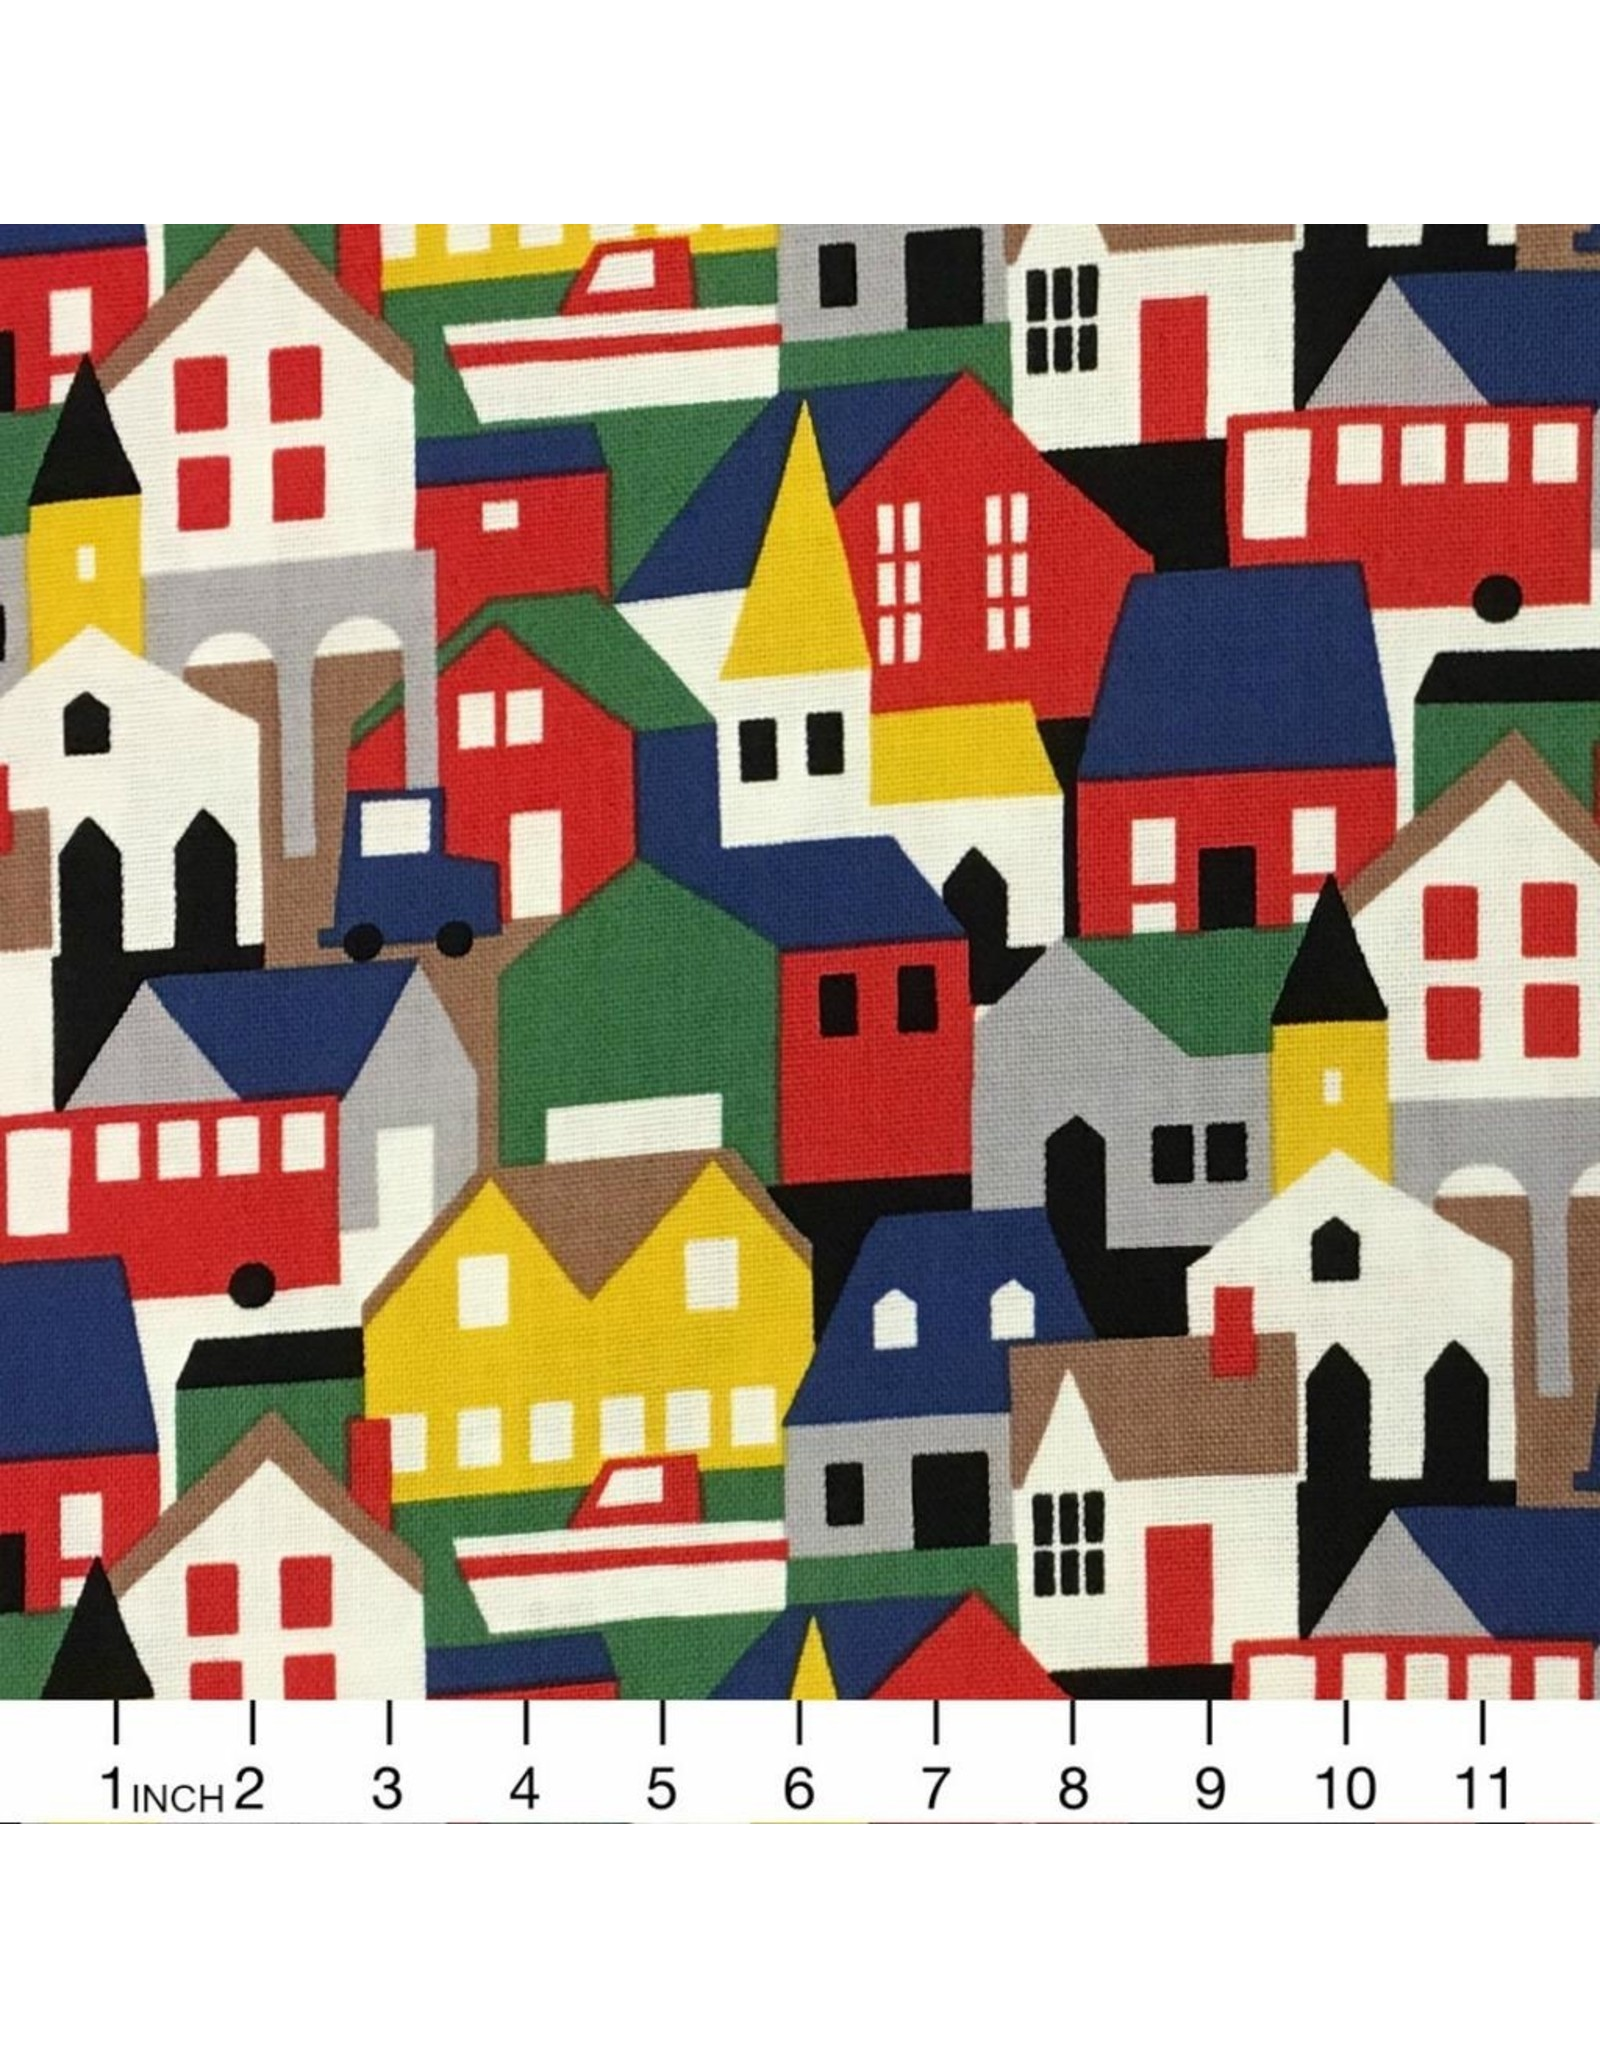 Hokkoh, Japan Canvas, Houses in Multi, Fabric Half-Yards 311-1230-1-A